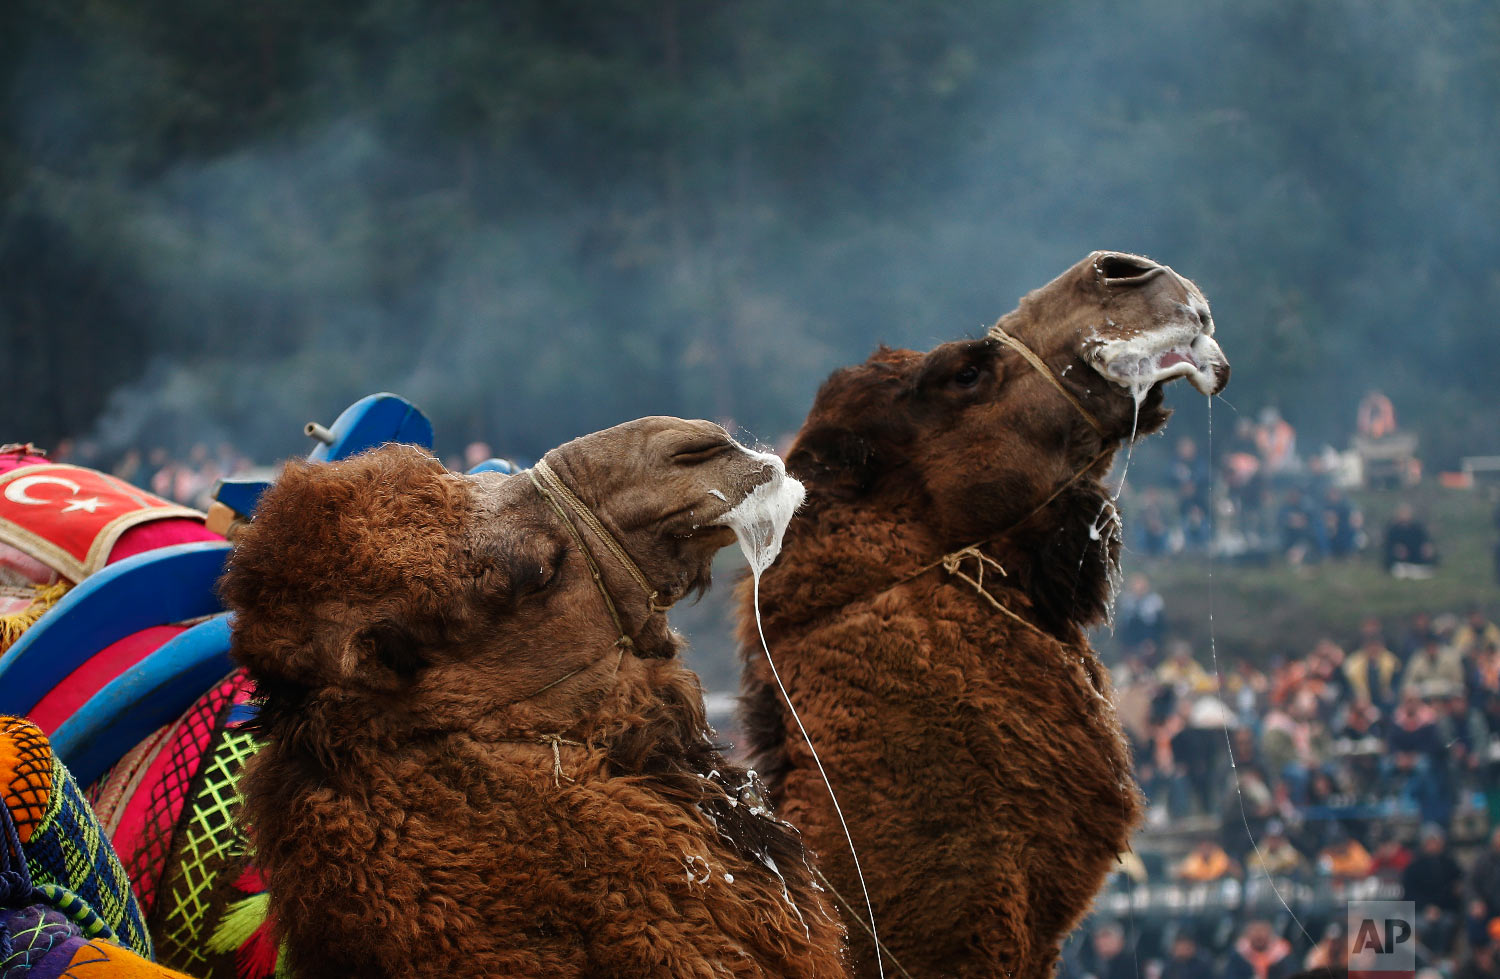 Camels wrestle during Turkey's largest camel wrestling festival in the Aegean town of Selcuk, Turkey, Sunday, Jan. 20, 2019. (AP Photo/Lefteris Pitarakis)